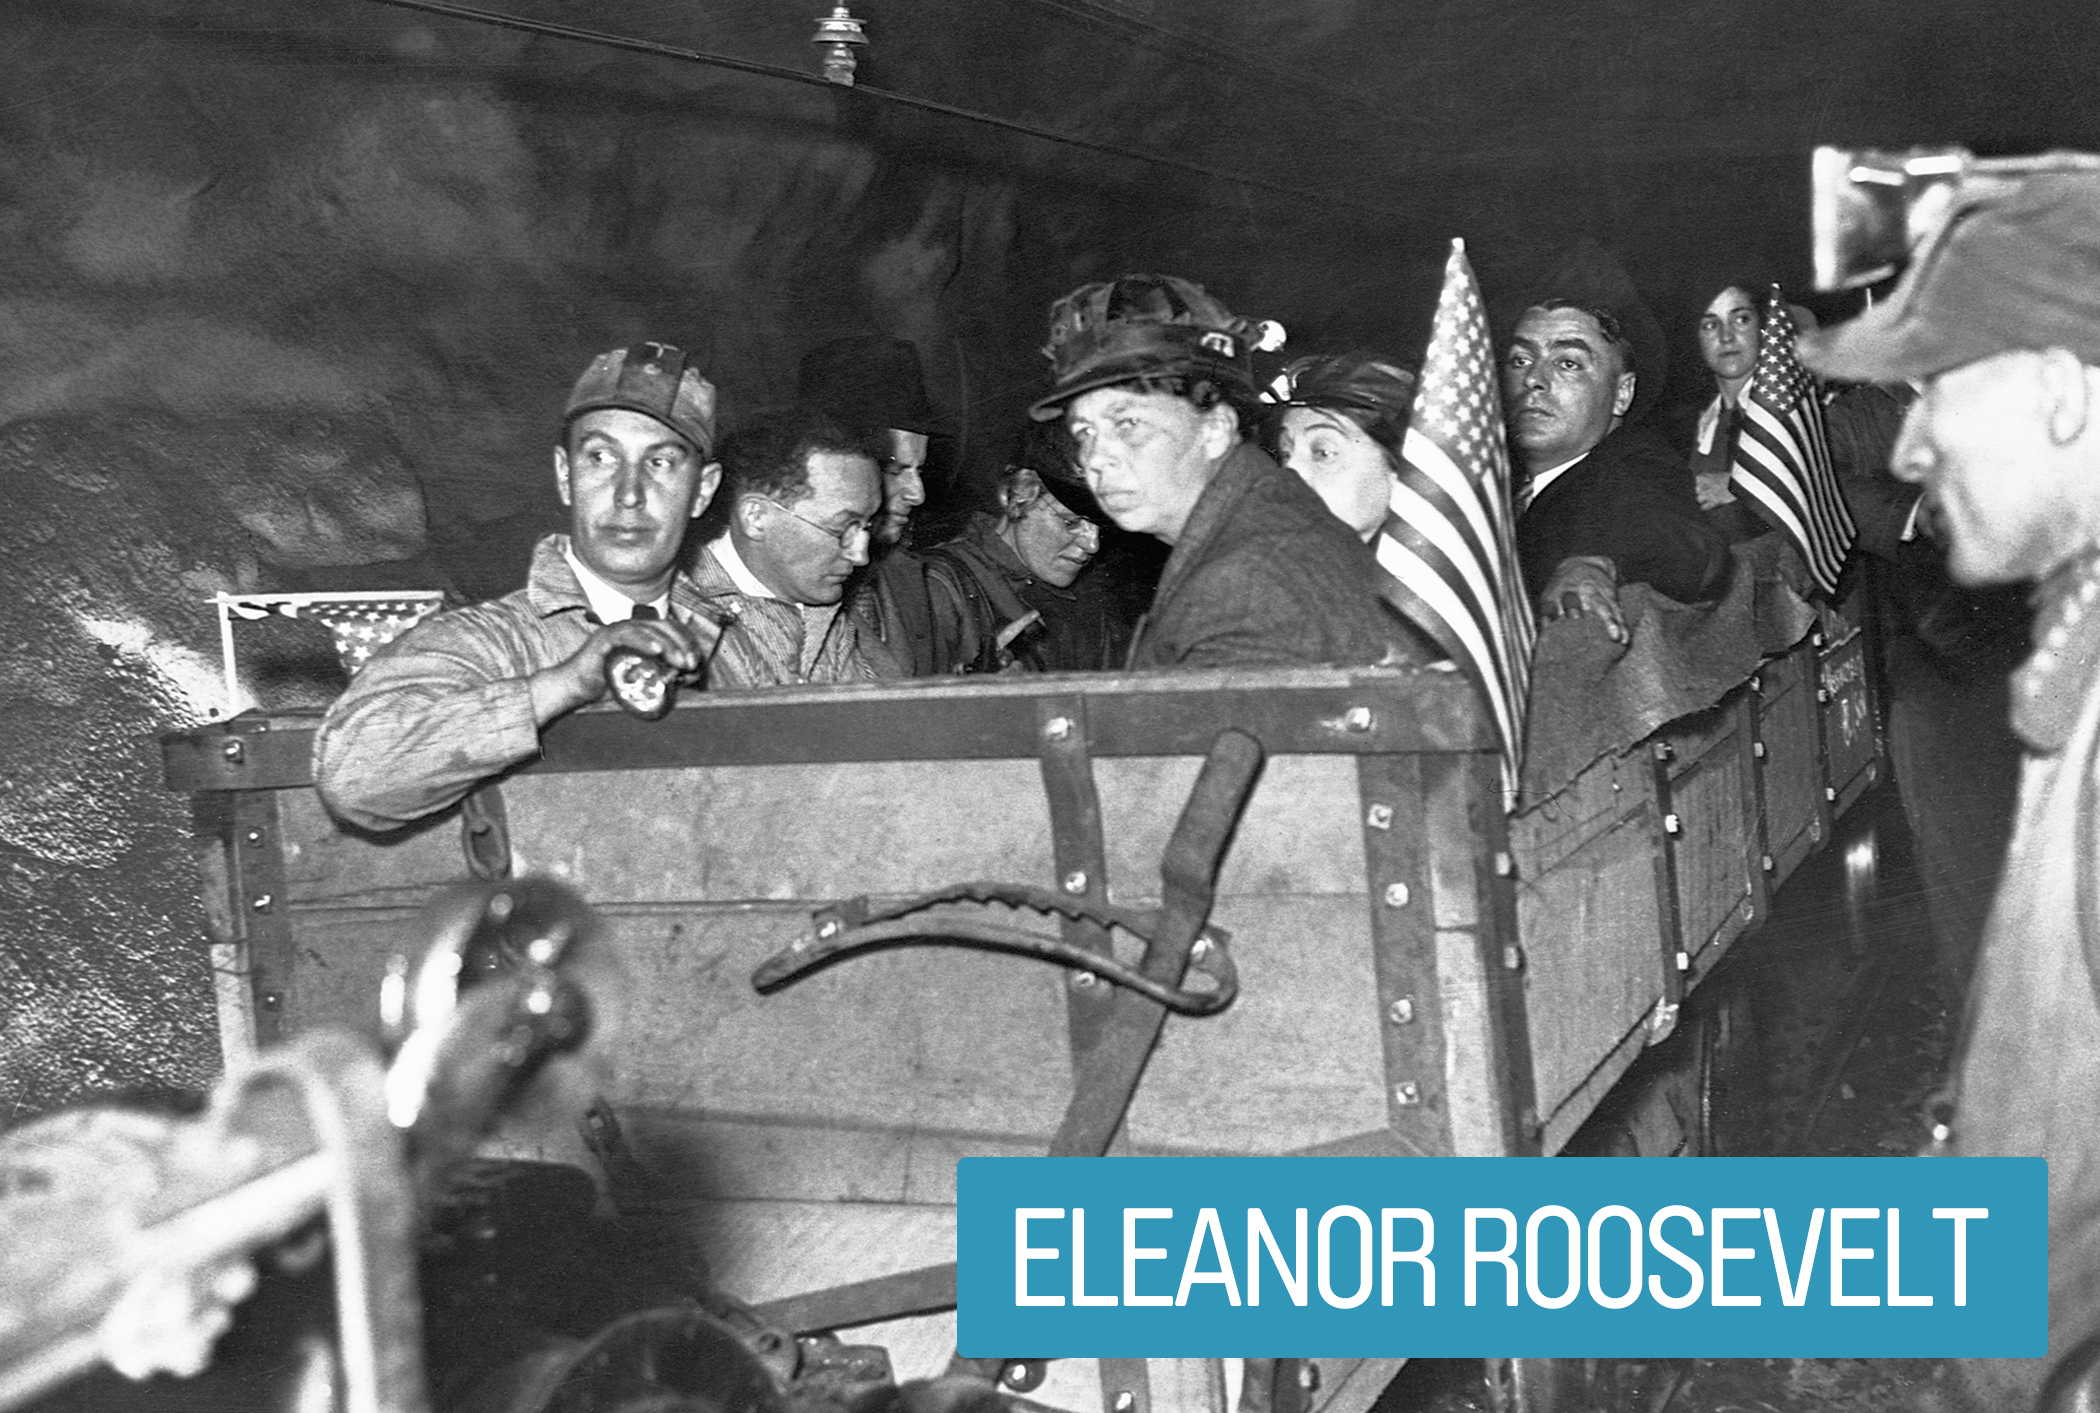 """Eleanor Roosevelt inspected social and economic reform programs associated with The New Deal, ensuring their effectiveness and equal treatment for women, youths, African-Americans and coal miners.                                             During World War II, she rallied wives of the enlisted to work on the home front, popularizing """"Rosie-the-Riveters."""""""